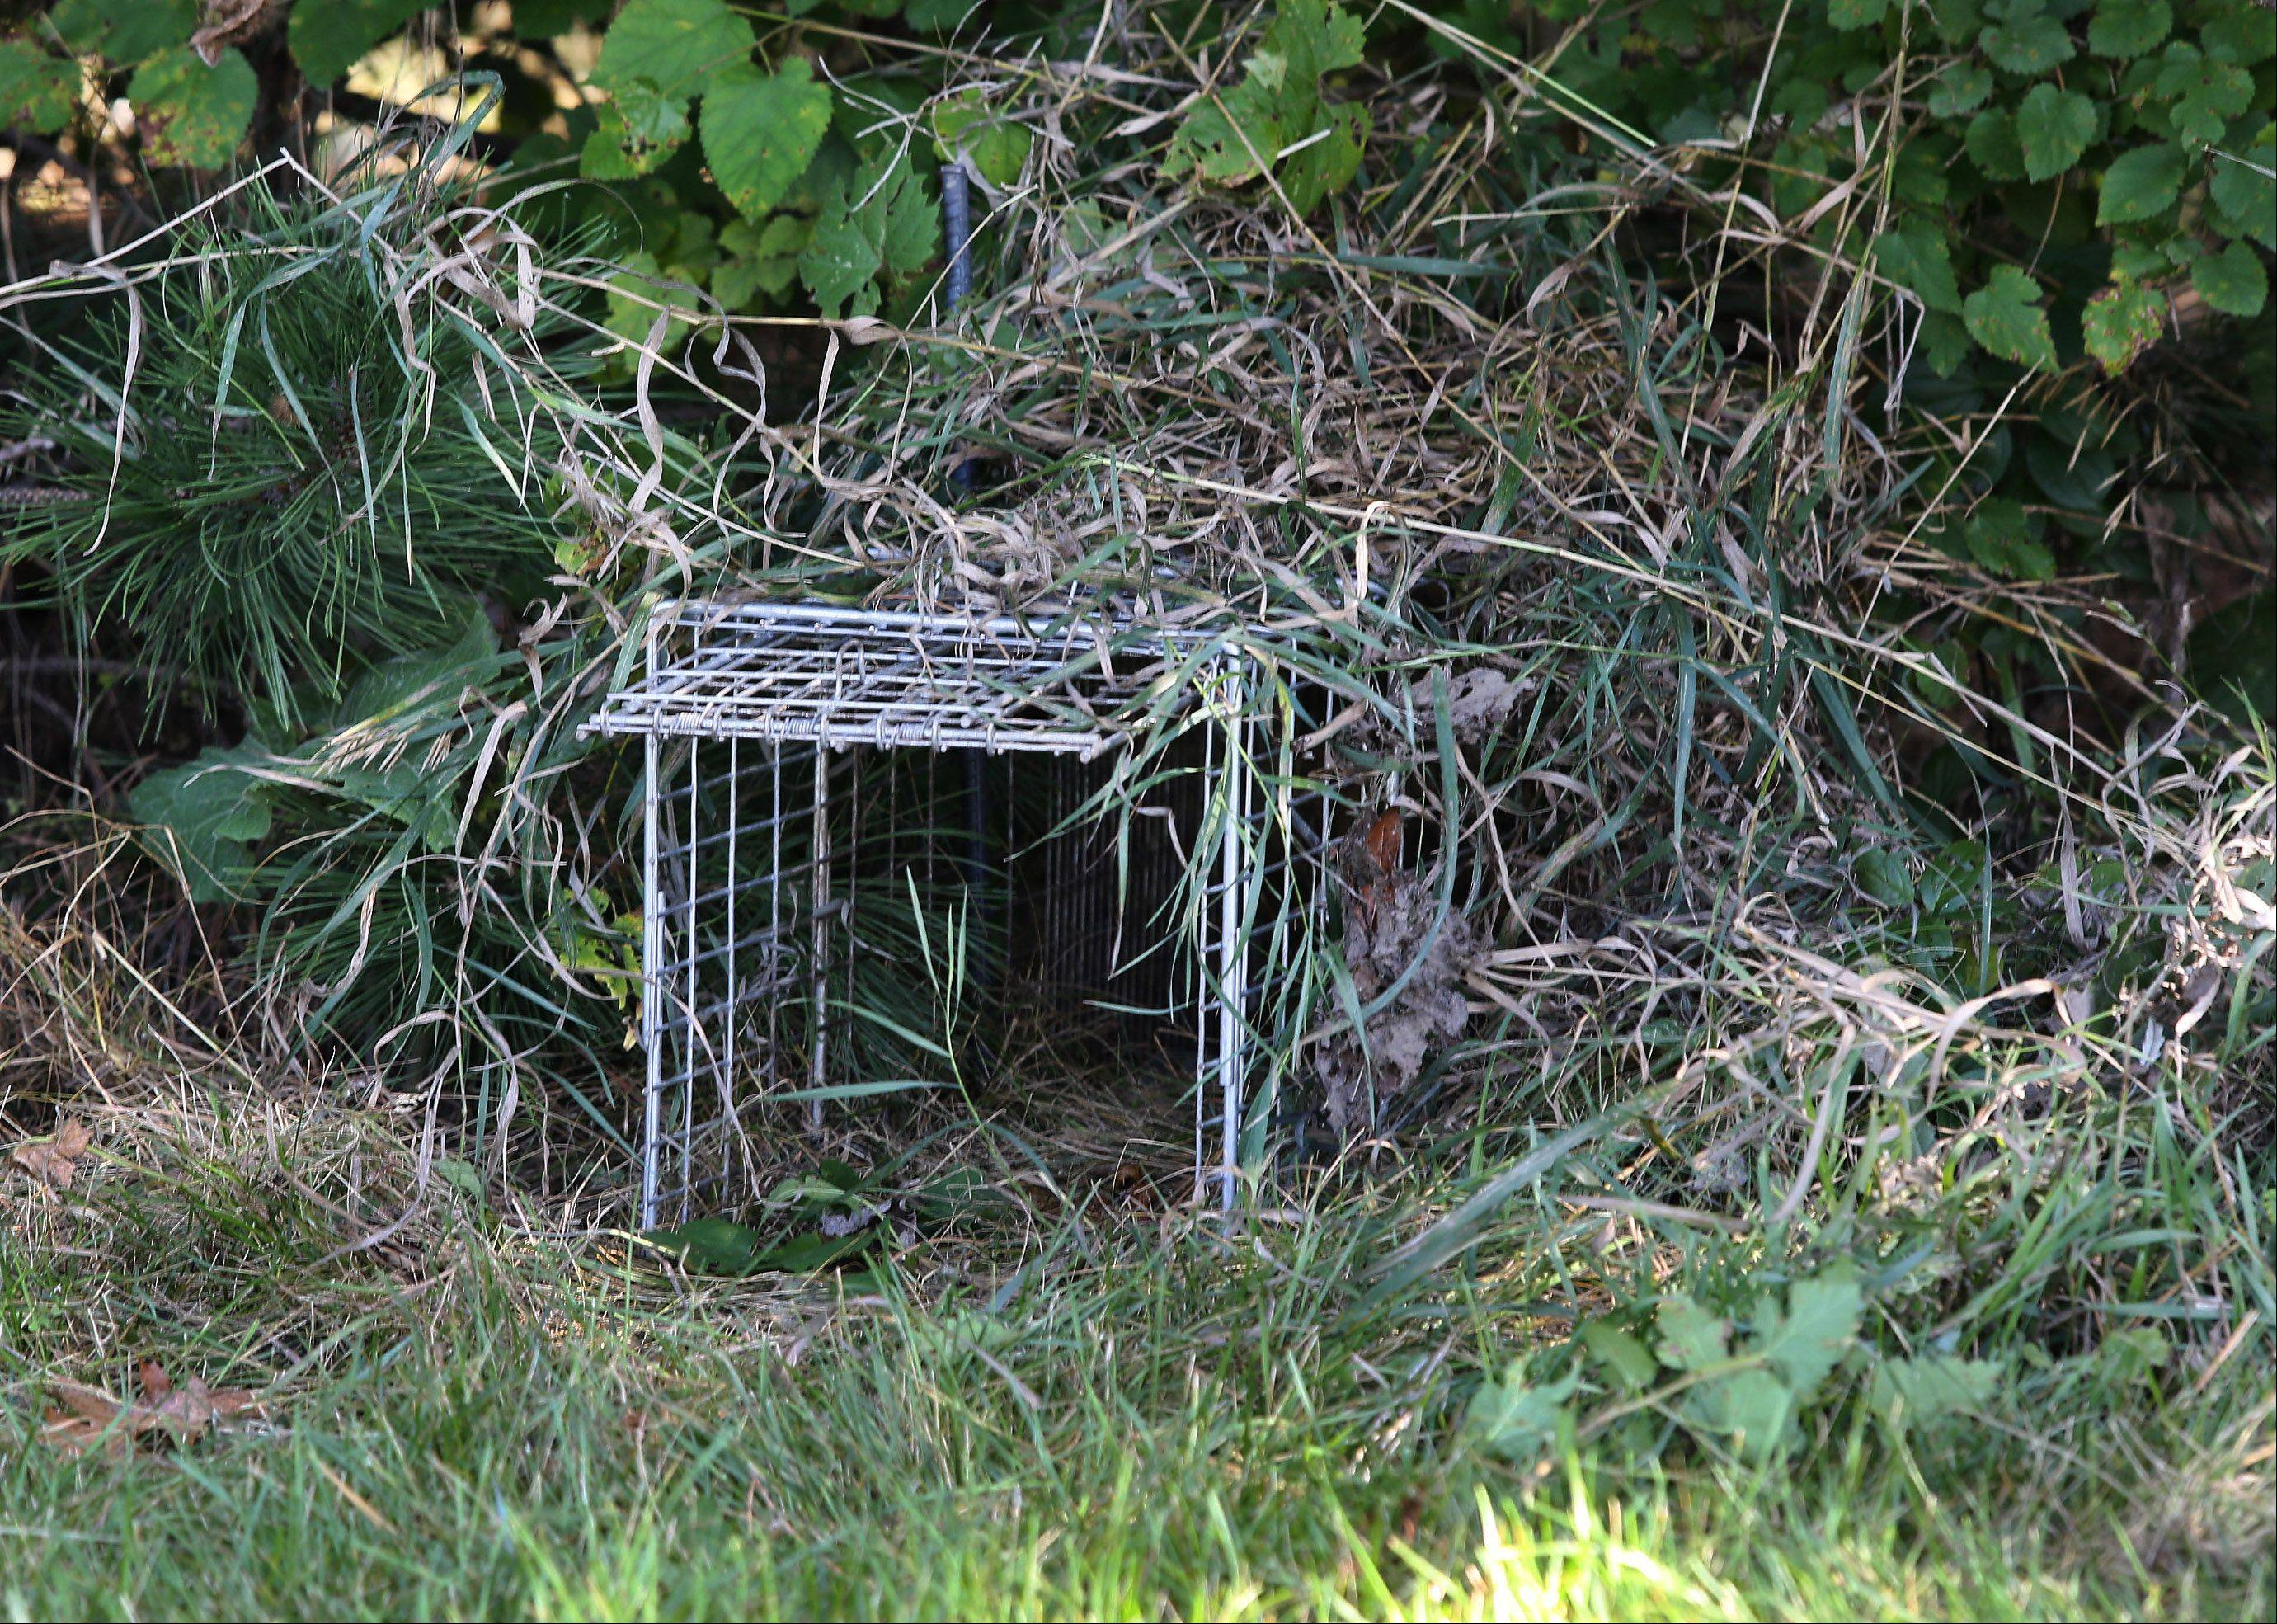 John Dynek of JD's Wildlife Services set this skunk trap in Deerpath Park in Vernon Hills on Monday. The village and the Vernon Hills Park District have joined forces to hire the trapper to thin the skunk population in town.